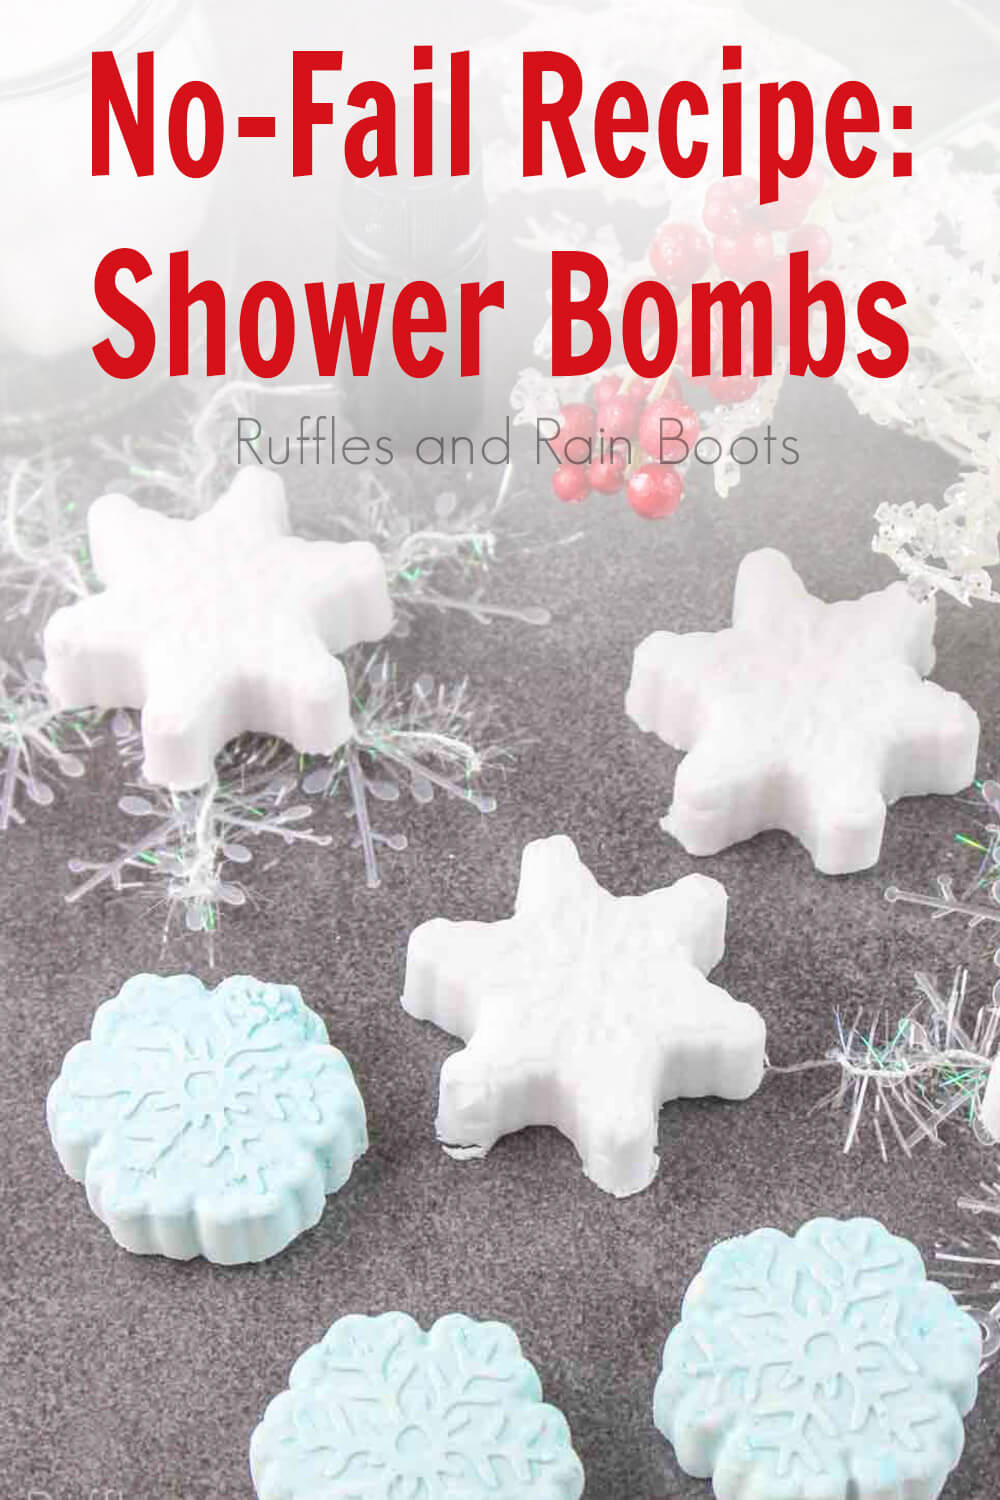 no fail shower bomb recipe shaped like snowflakes on a grey background with text which reads no-fail recipe: shower bombs